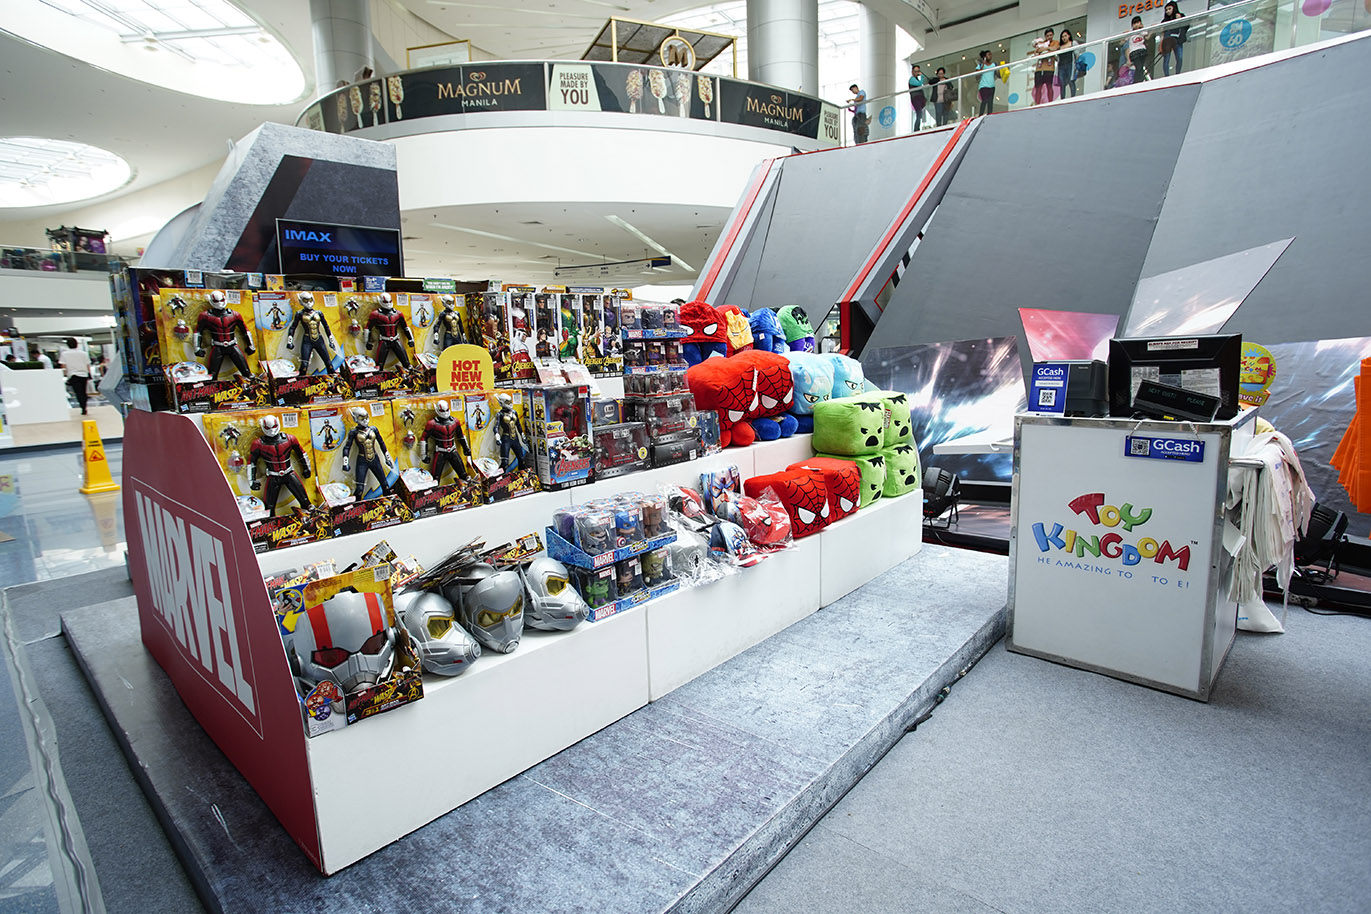 Discover The World Of Ant Man And Wasp At Sm Cinema Jakarta Et Ticket Aquarium Reguler Weekday Feel Experience With Not Actual Size Exhibit Mall Asia Main Atrium On June 28 July 4 North Edsa